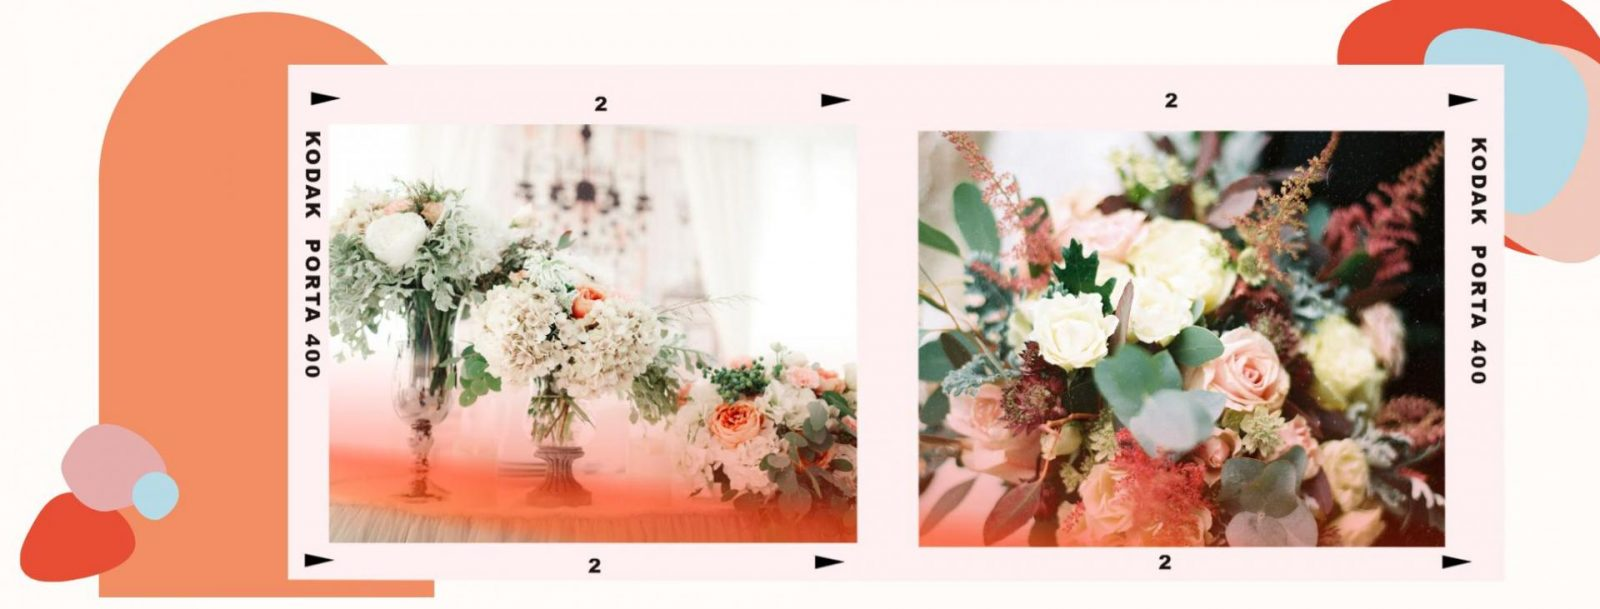 A graphic created with funky shapes featuring wedding florals.